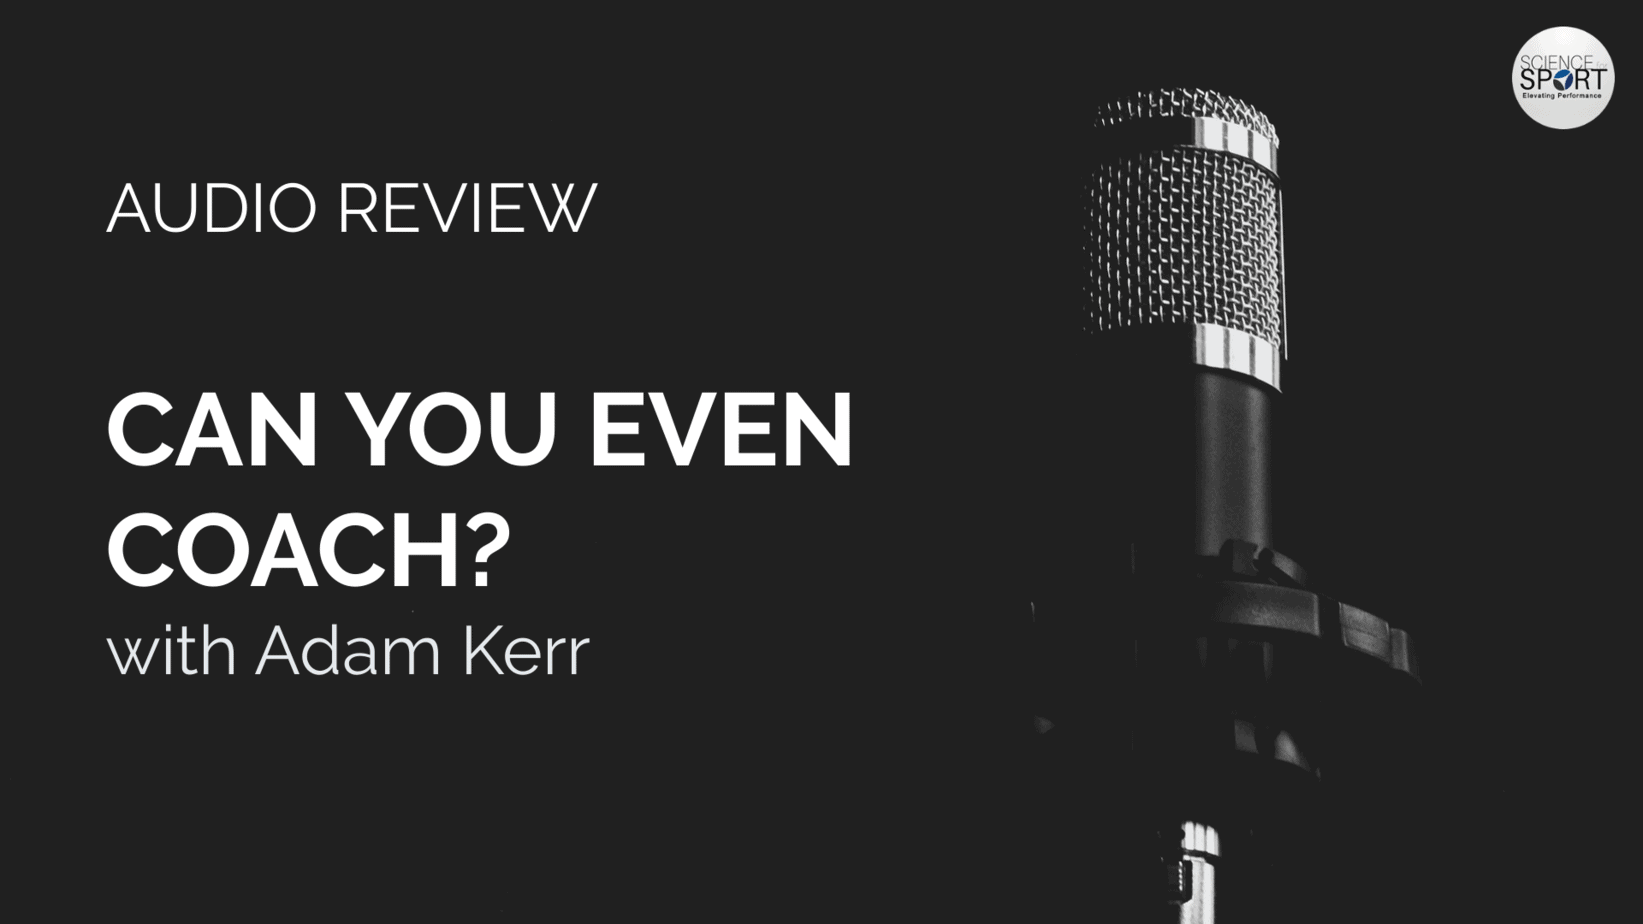 Can You Even Coach - Audio Review